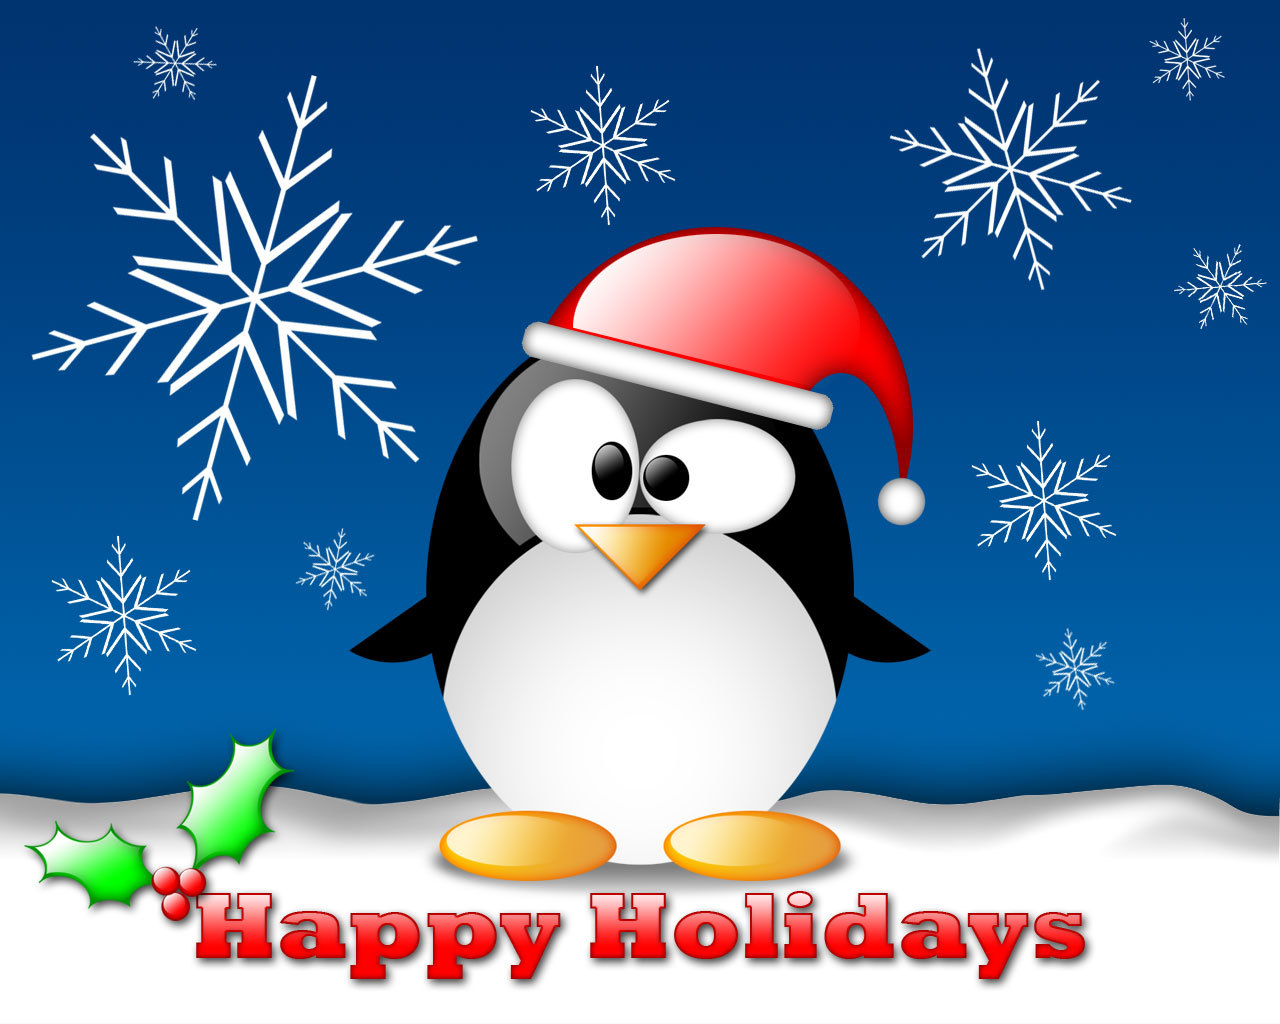 Funny wallpapersHD wallpapers cute christmas wallpapers 1280x1024